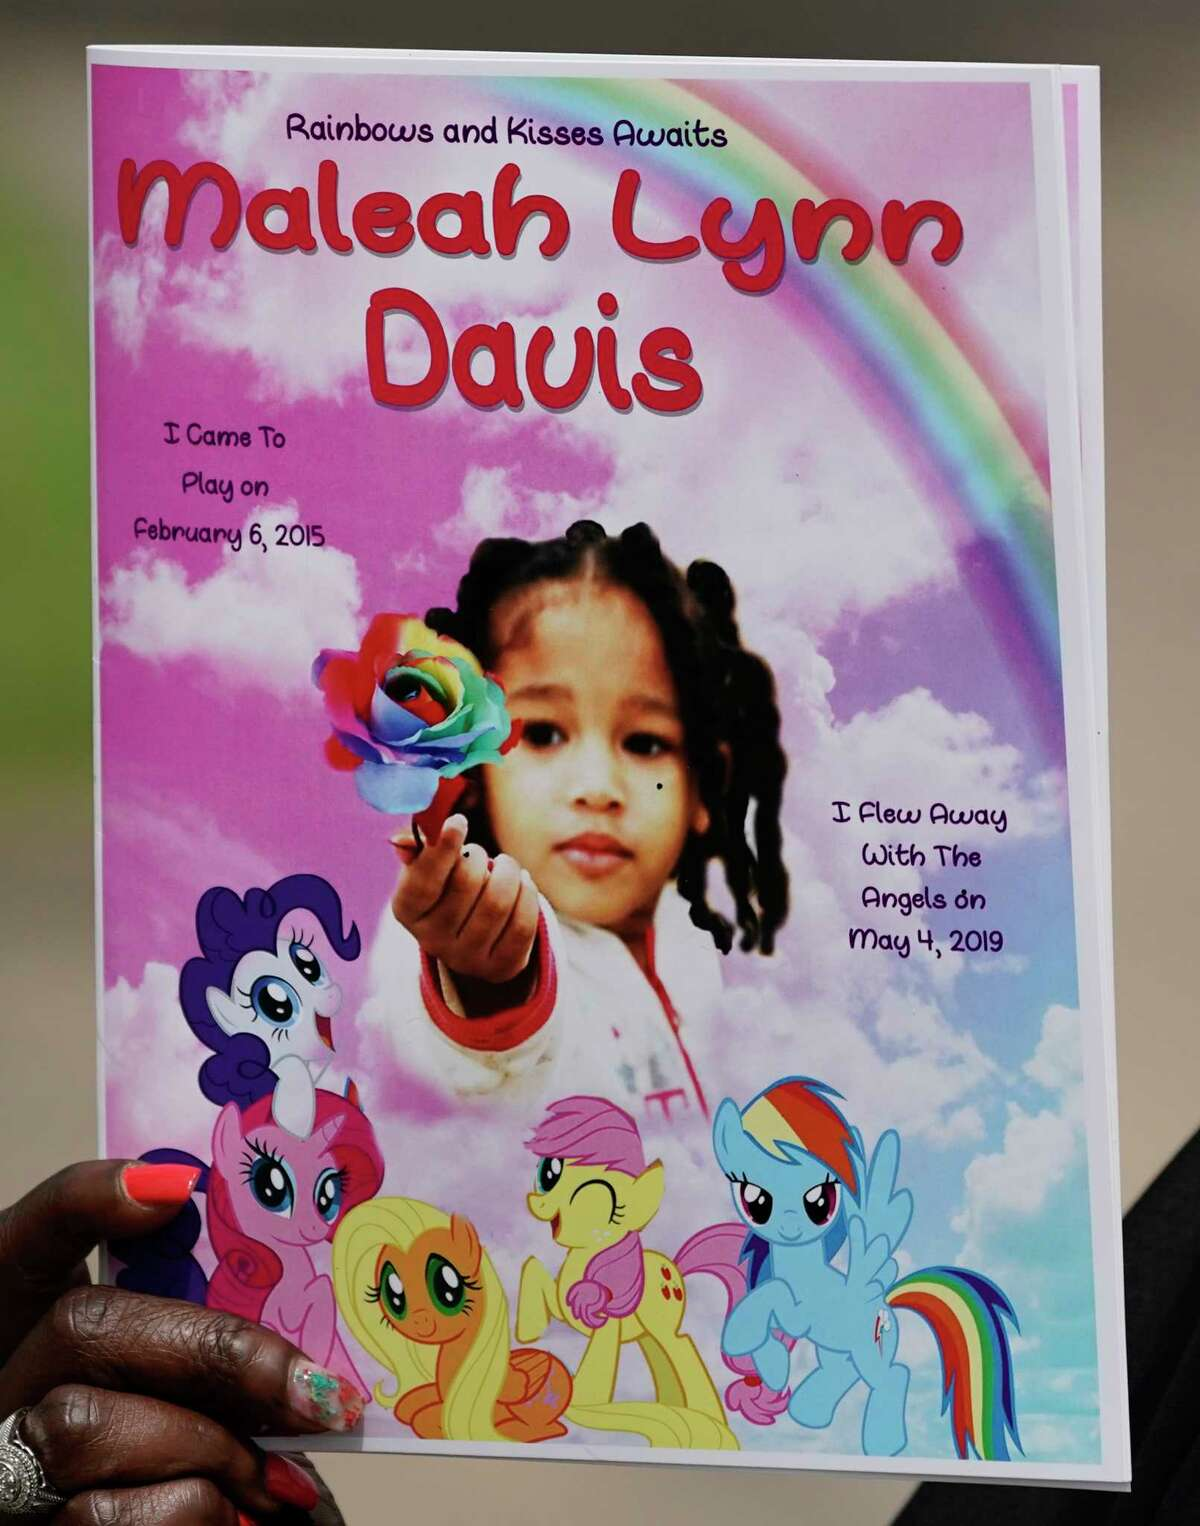 A funeral program is displayed by an attendee after the service for 4-year-old Maleah Davis held at the Crossing Community Church, 3225 W Orem Dr., Saturday, June 22, 2019, in Houston. Derion Vence, the former fiance, of her mother, Brittany Bowens, is charged in connection with her death. Maleah was reported missing May 4 in what Vence first said was an abduction. Maleah's remains were found May 30 in Arkansas.